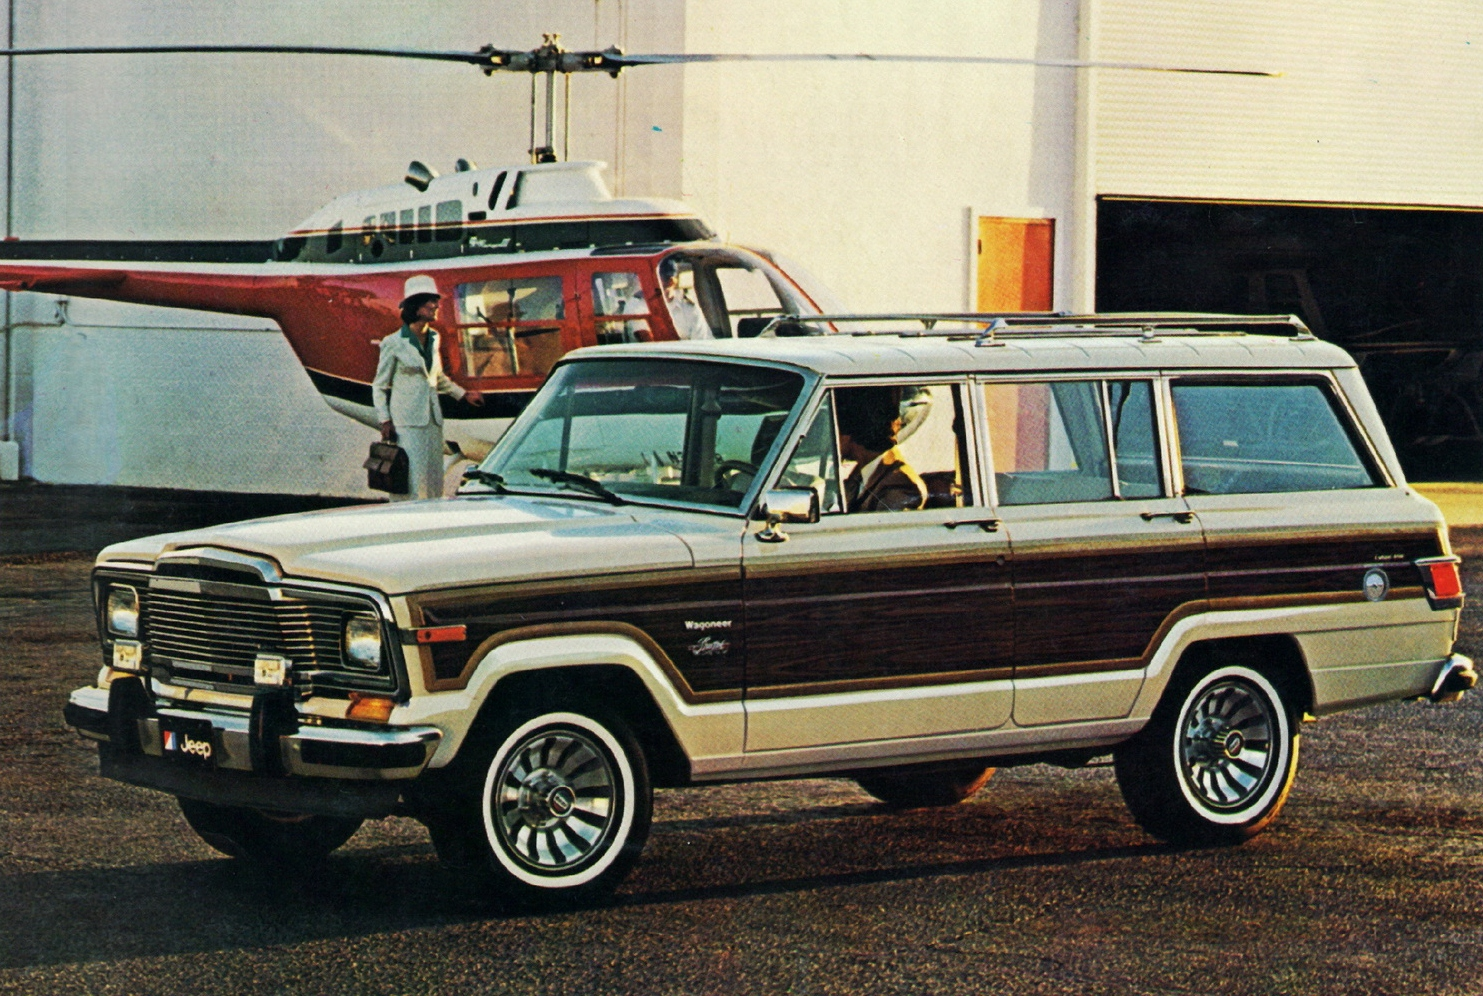 1991 Jeep Grand Wagoneer Image 9